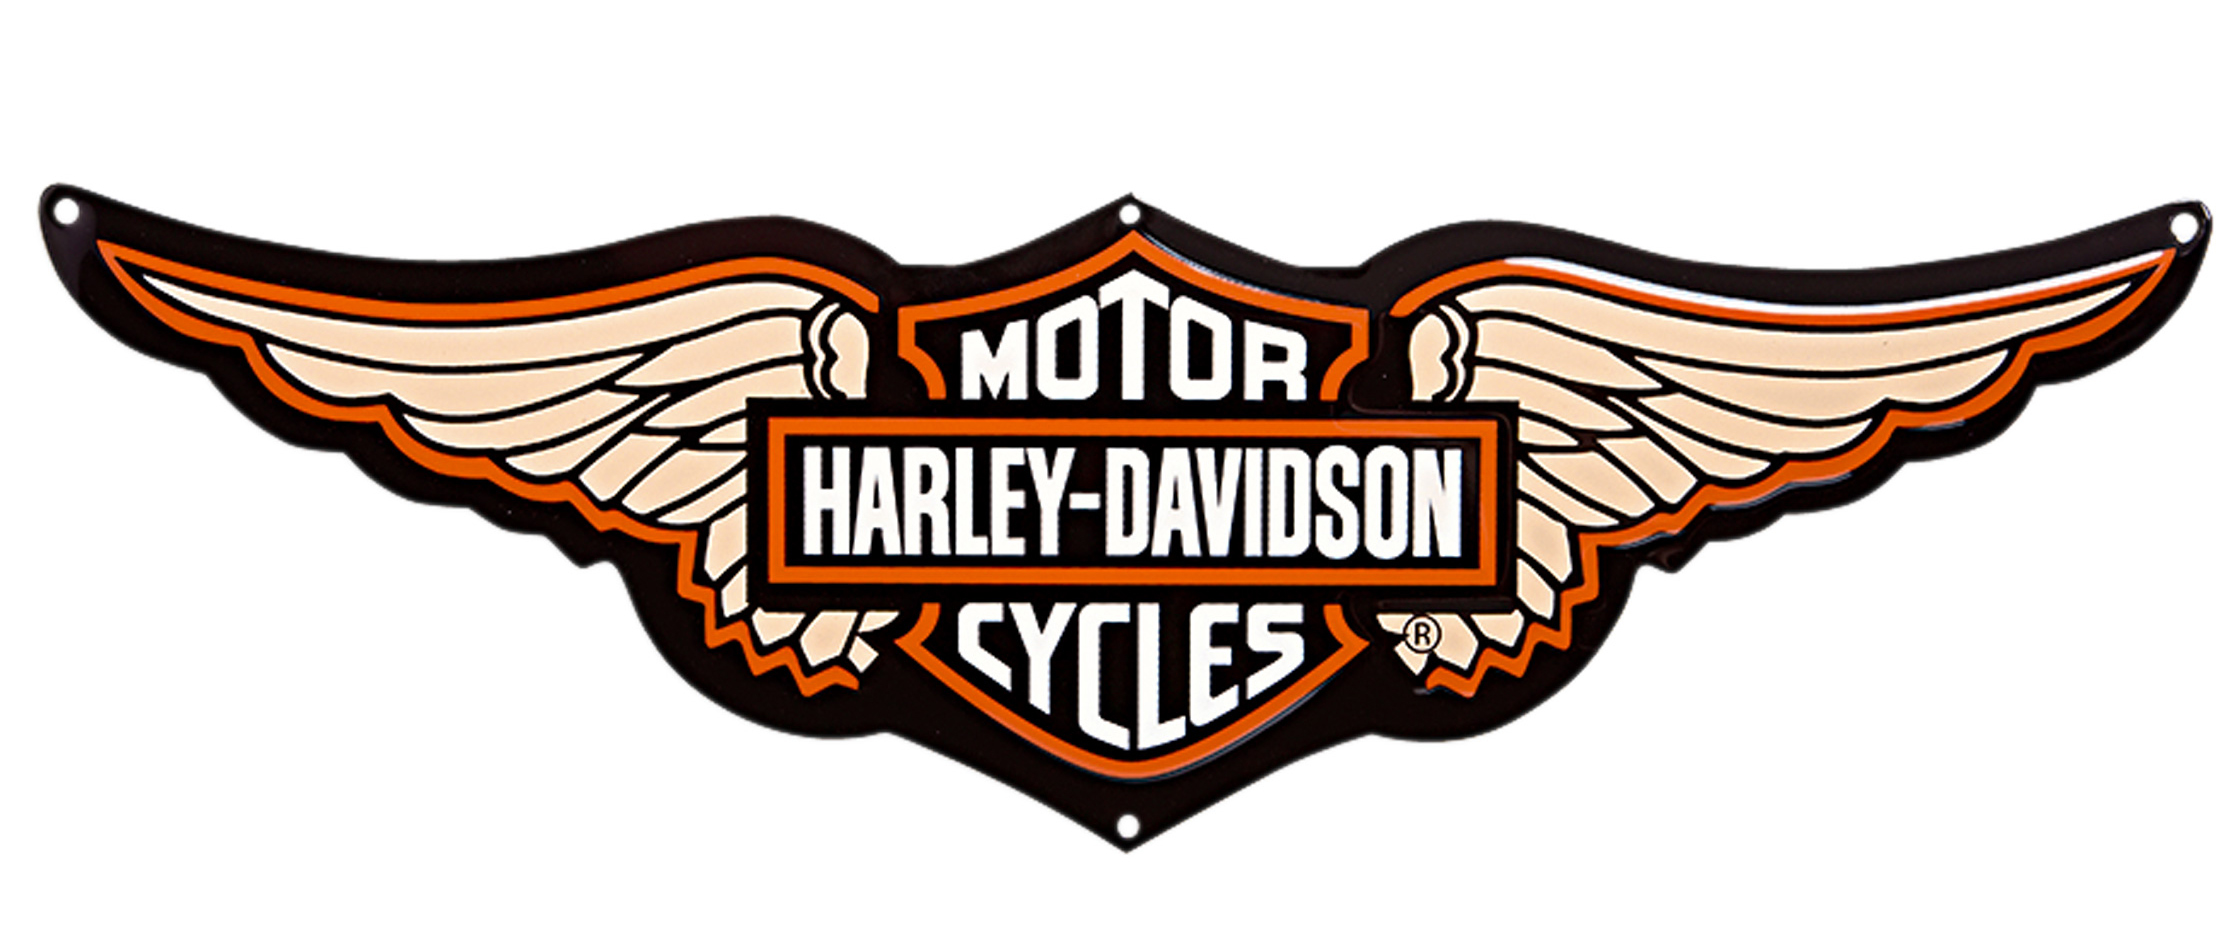 HarleyDavidsons Iconic Logo Rich In Symbolism - Harley davidsons motorcycles stickers